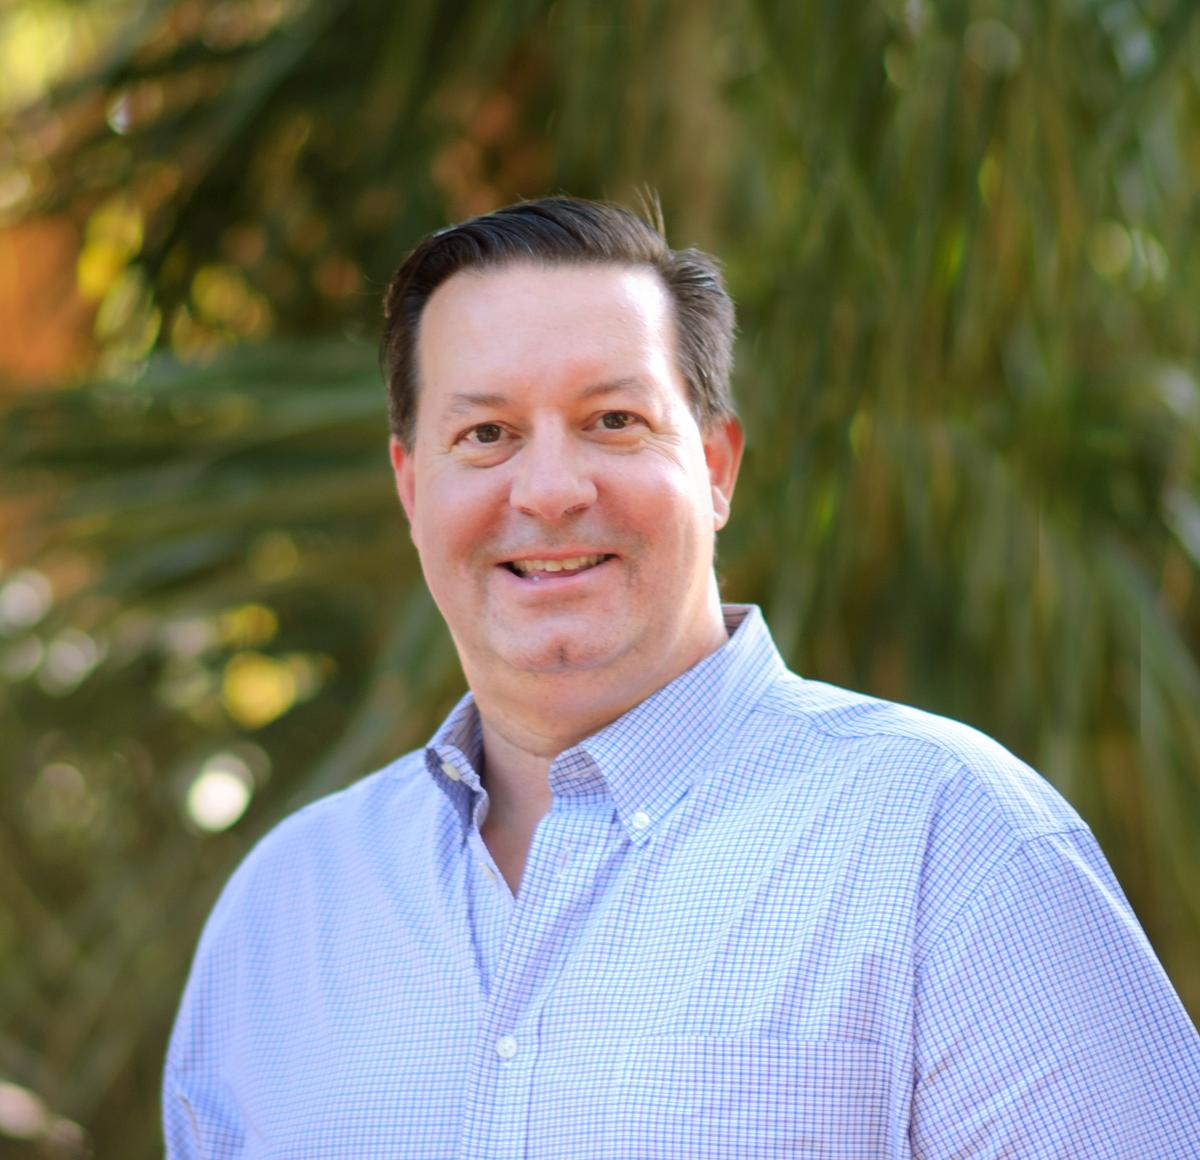 Michael Tompkins, board chair of ISPA and co-CEO of Palm Health, is one of many panelists at Cosmoprof Worldwide next month